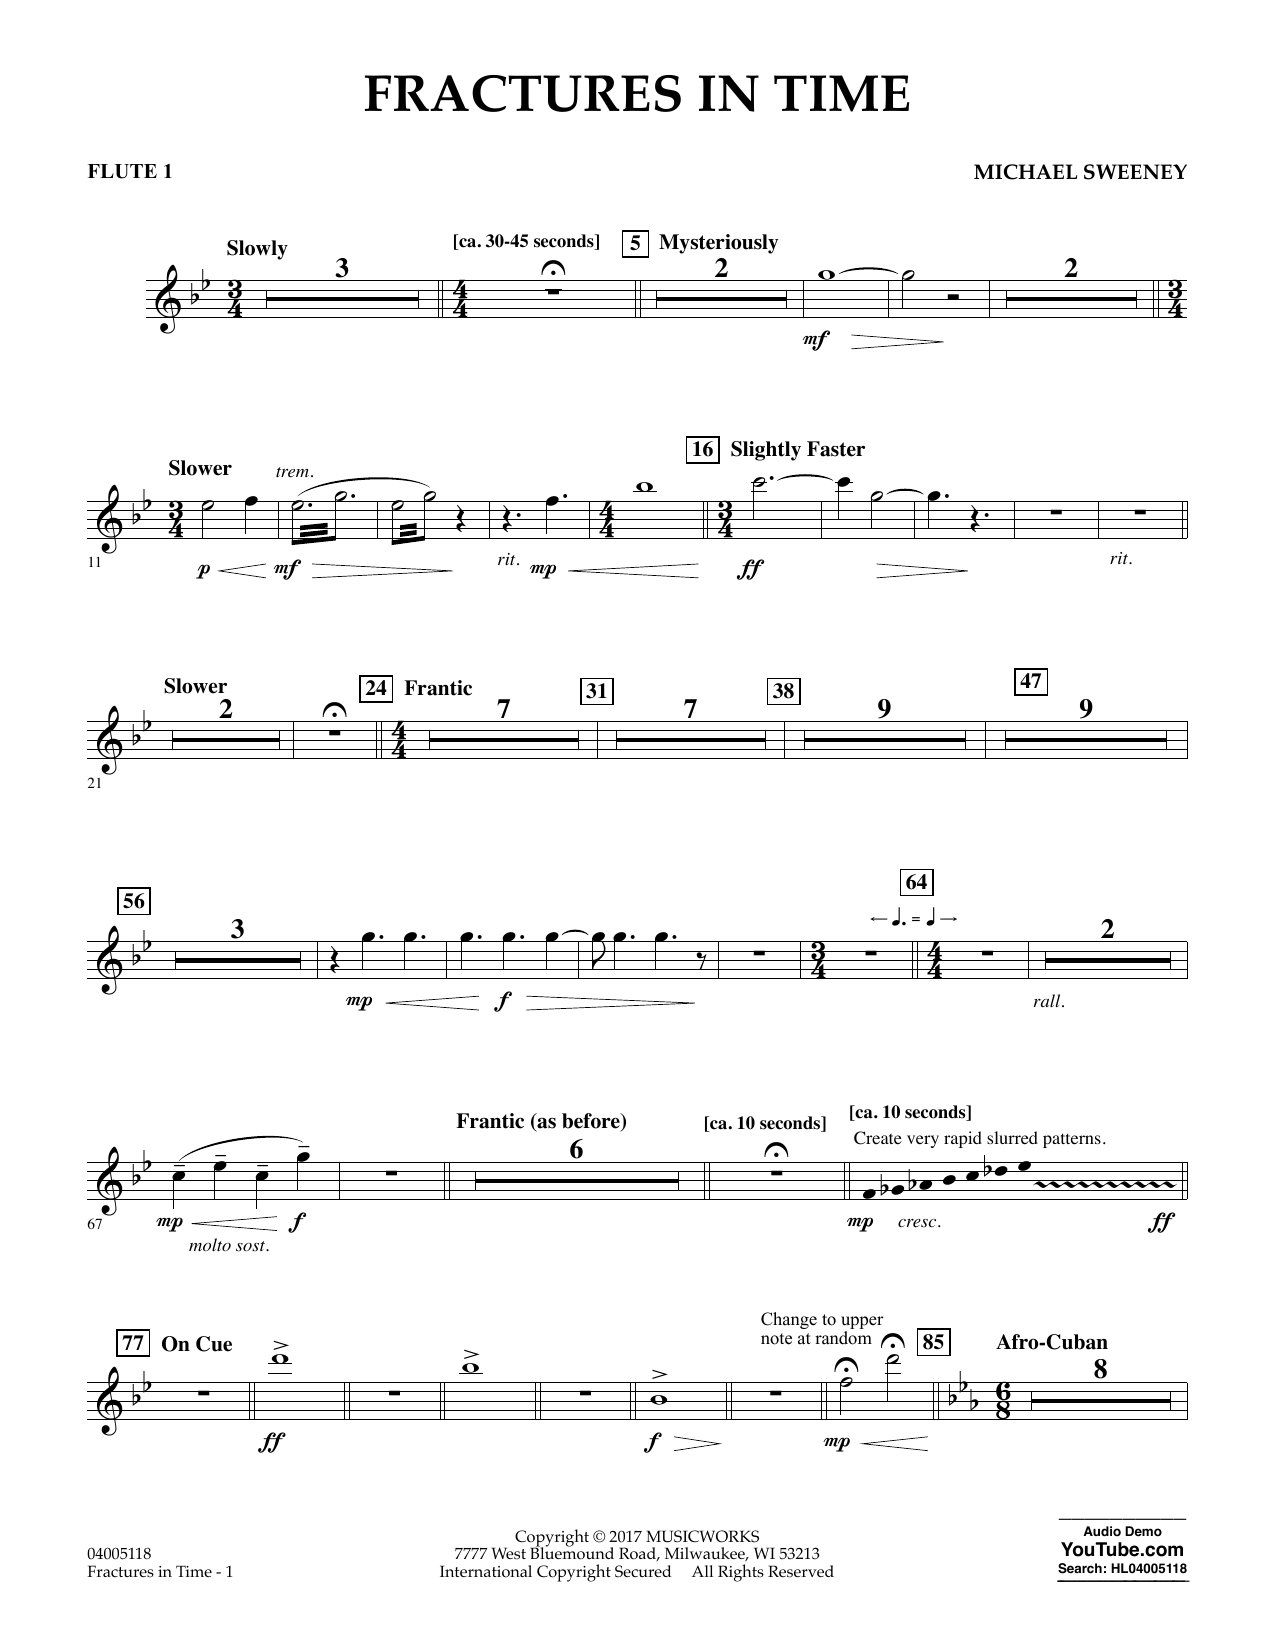 Fractures in Time - Flute 1 Sheet Music